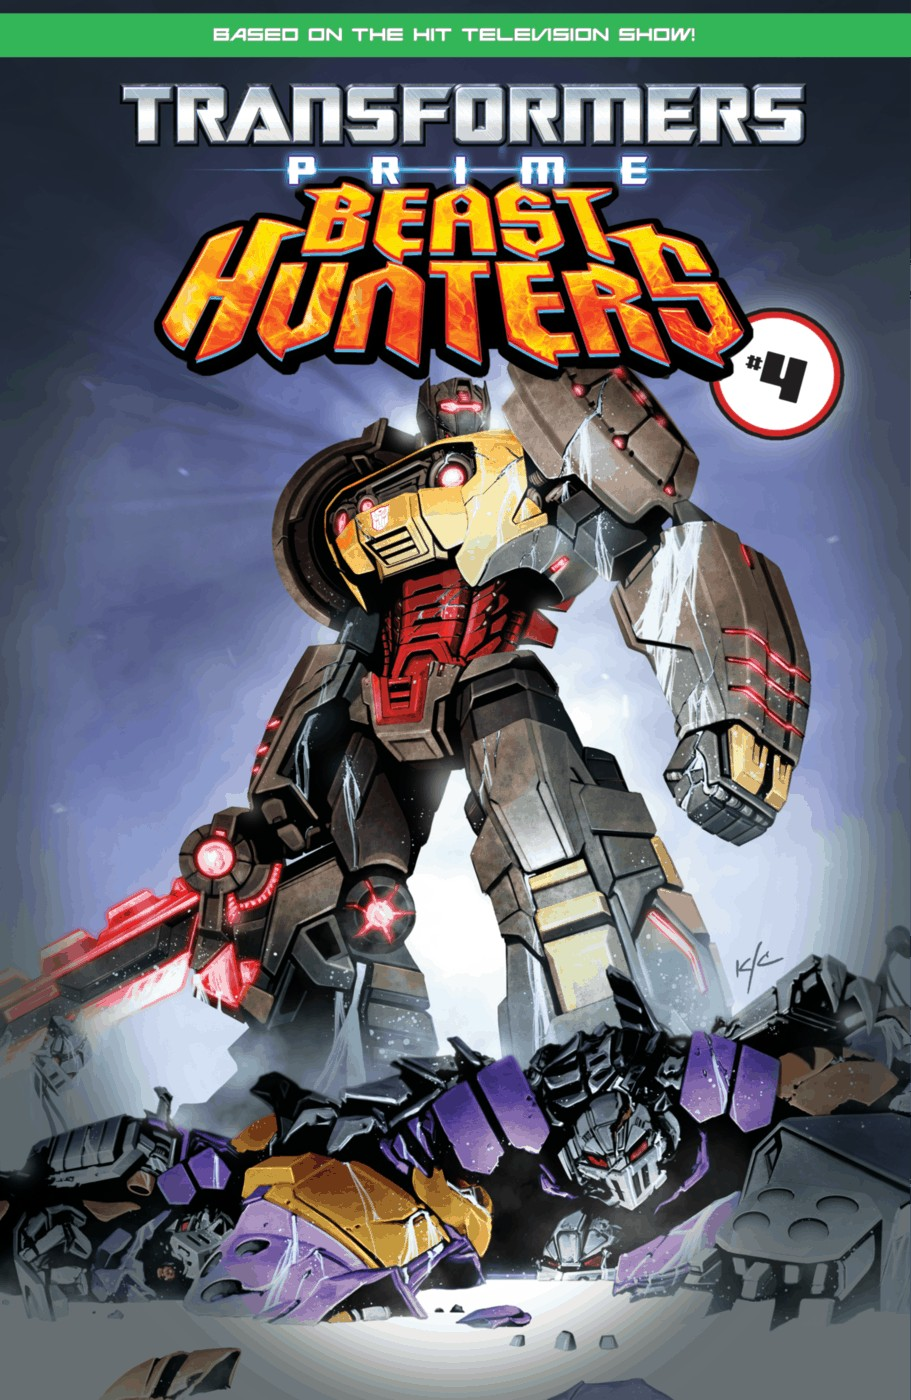 Read online Transformers Prime: Beast Hunters comic -  Issue #3 - 25